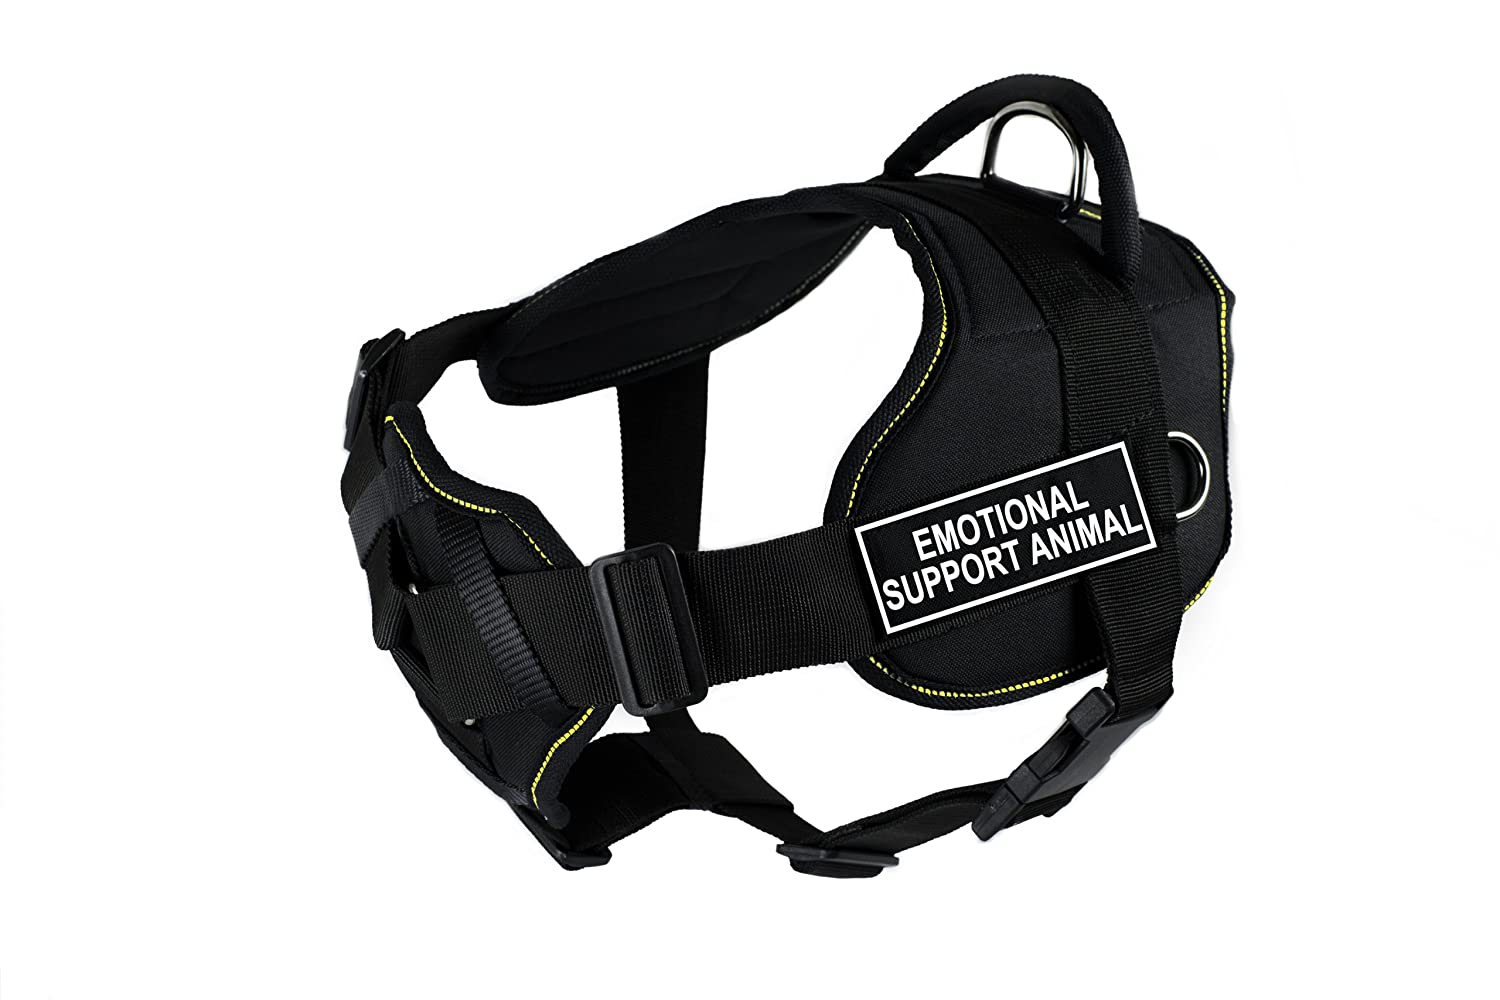 Dean & Tyler Fun Harness with Padded Chest Piece, Emotional Support Animal, Medium, Black with Yellow Trim